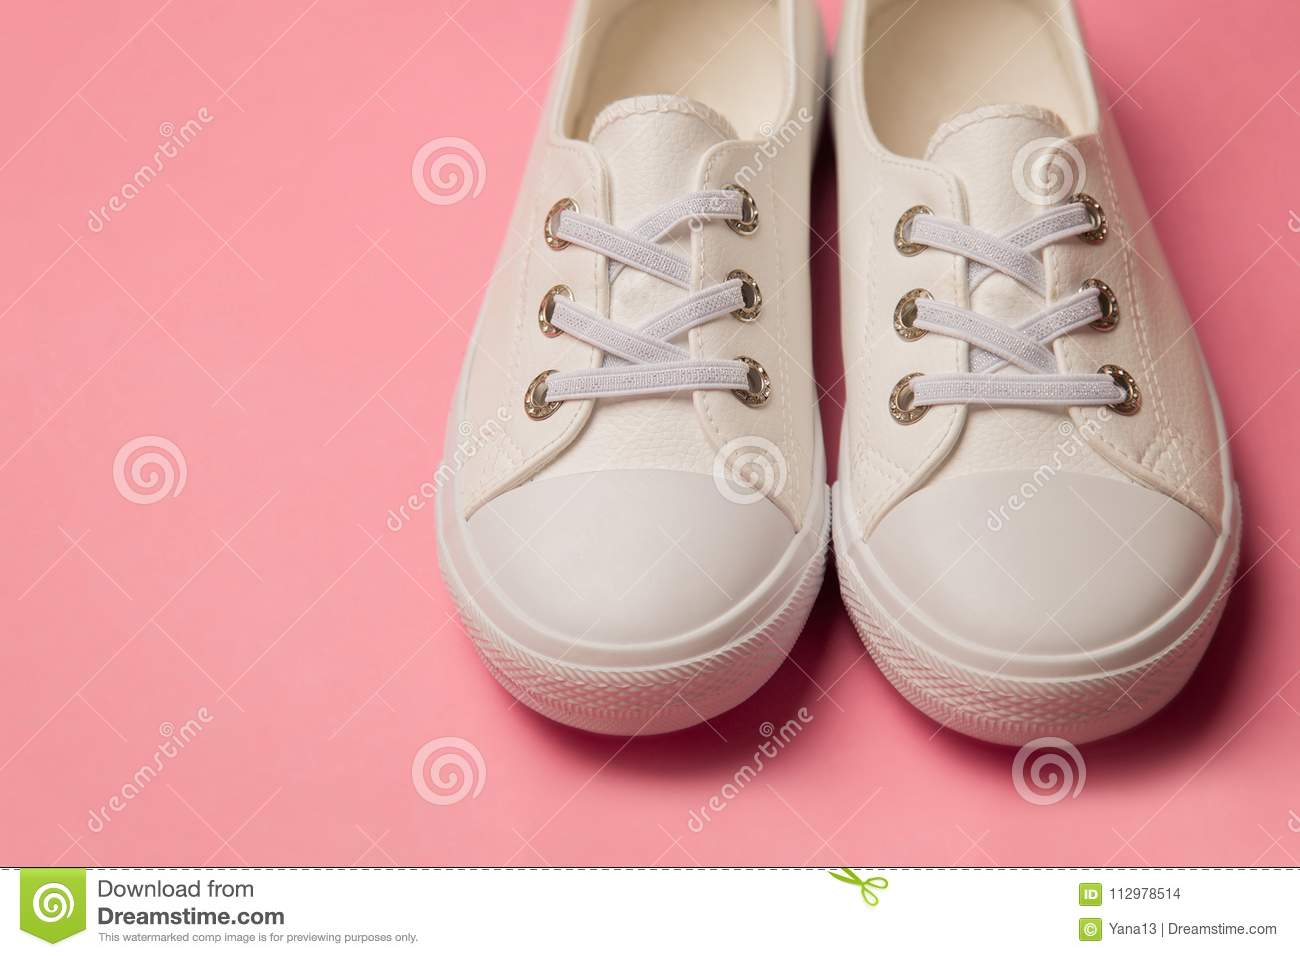 Overhead Shot Of White female Sneakers On Pastel Pink Background